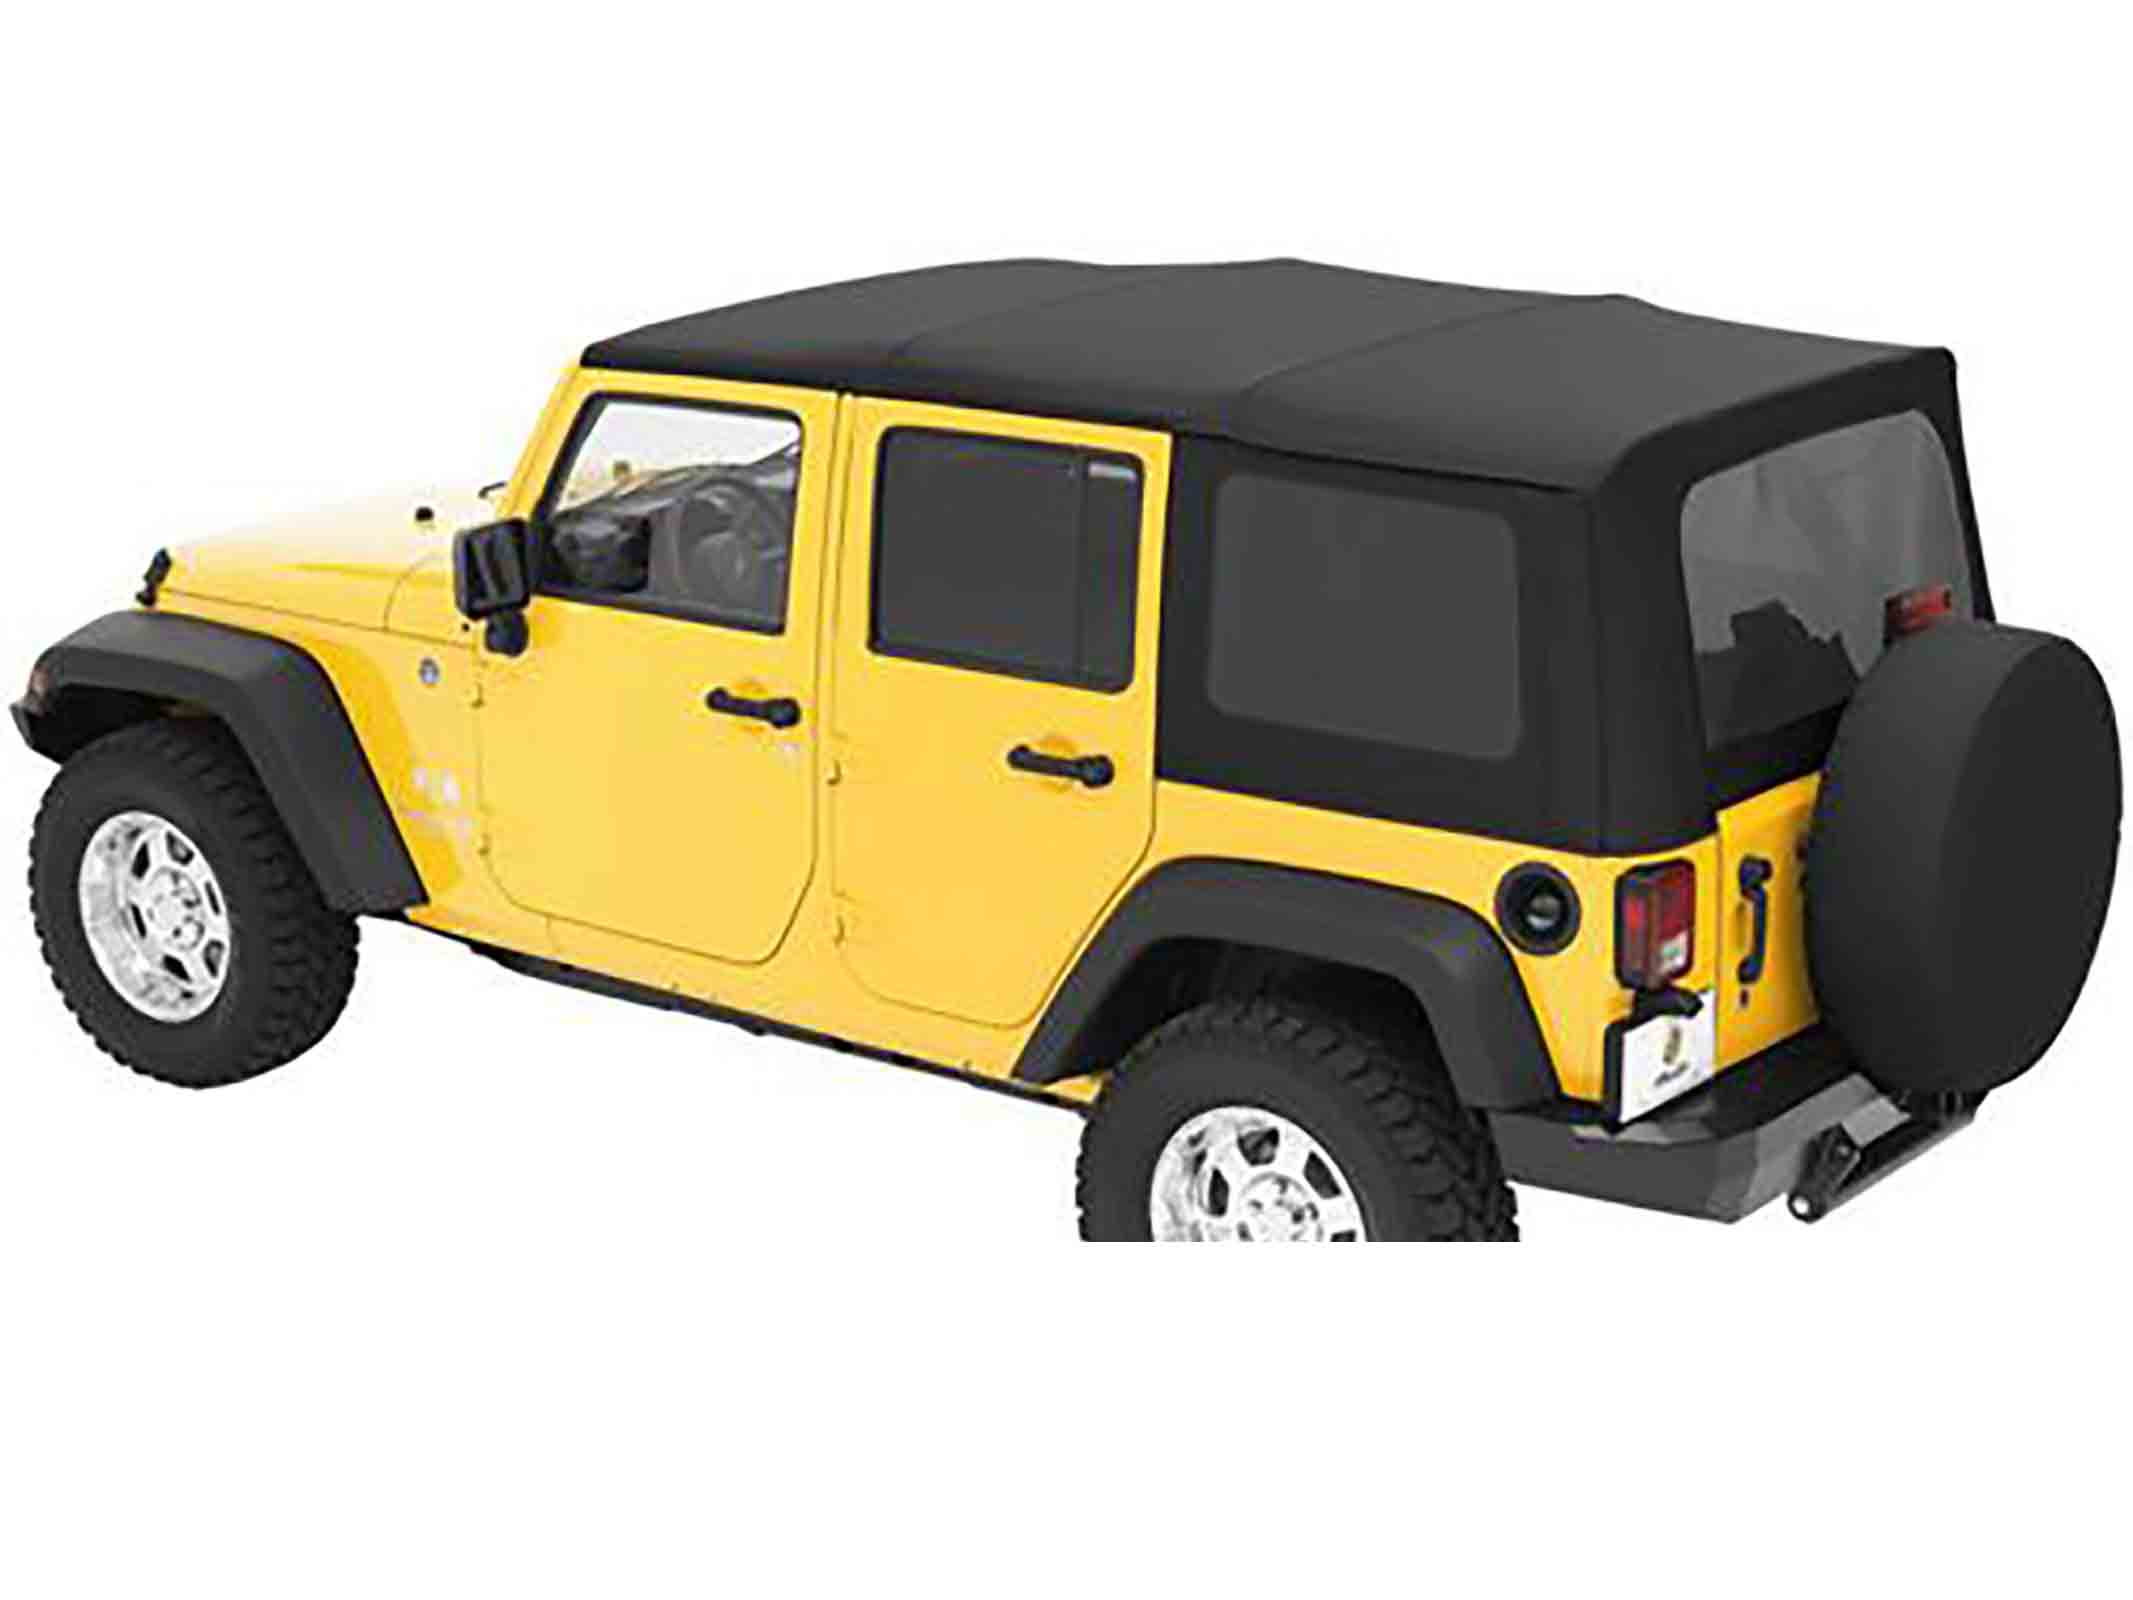 Softtop soft top capottina ricambio wrangler jk unlimited 07 09 black dia 4 porte ricambi jeep